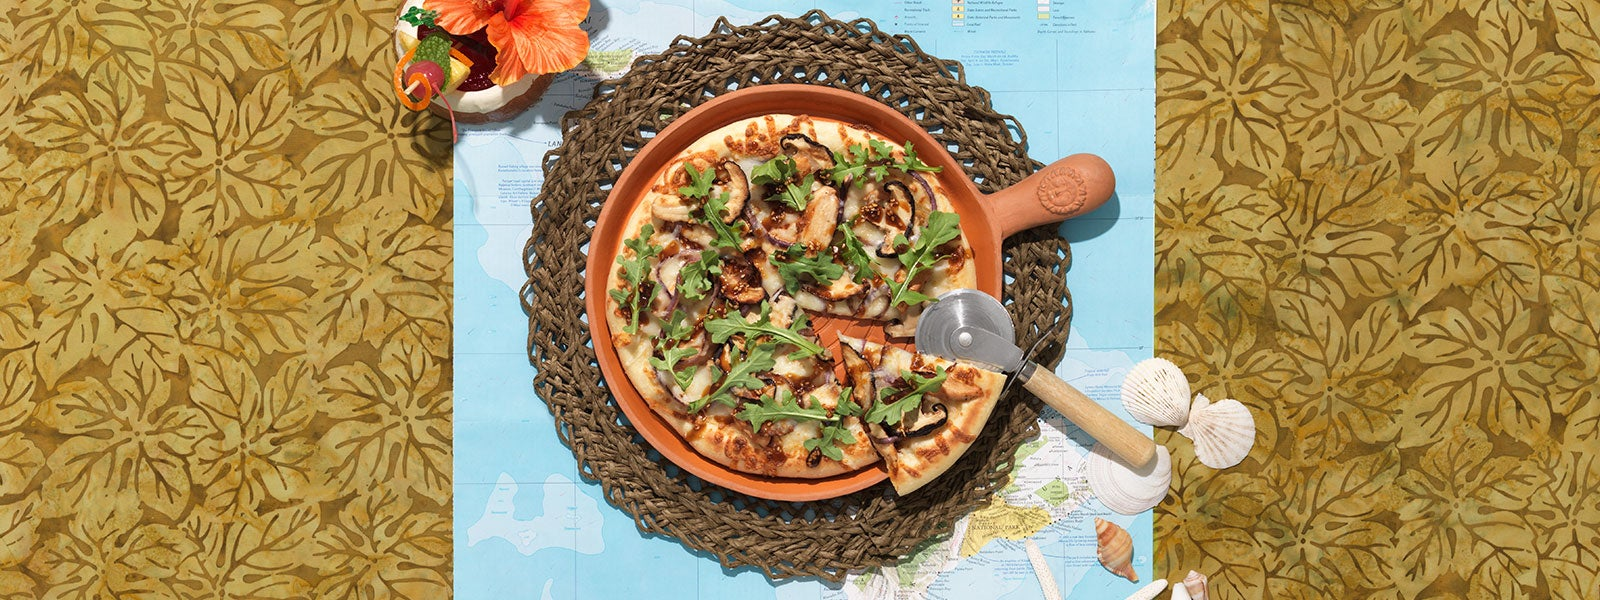 Island Grilled Pizza